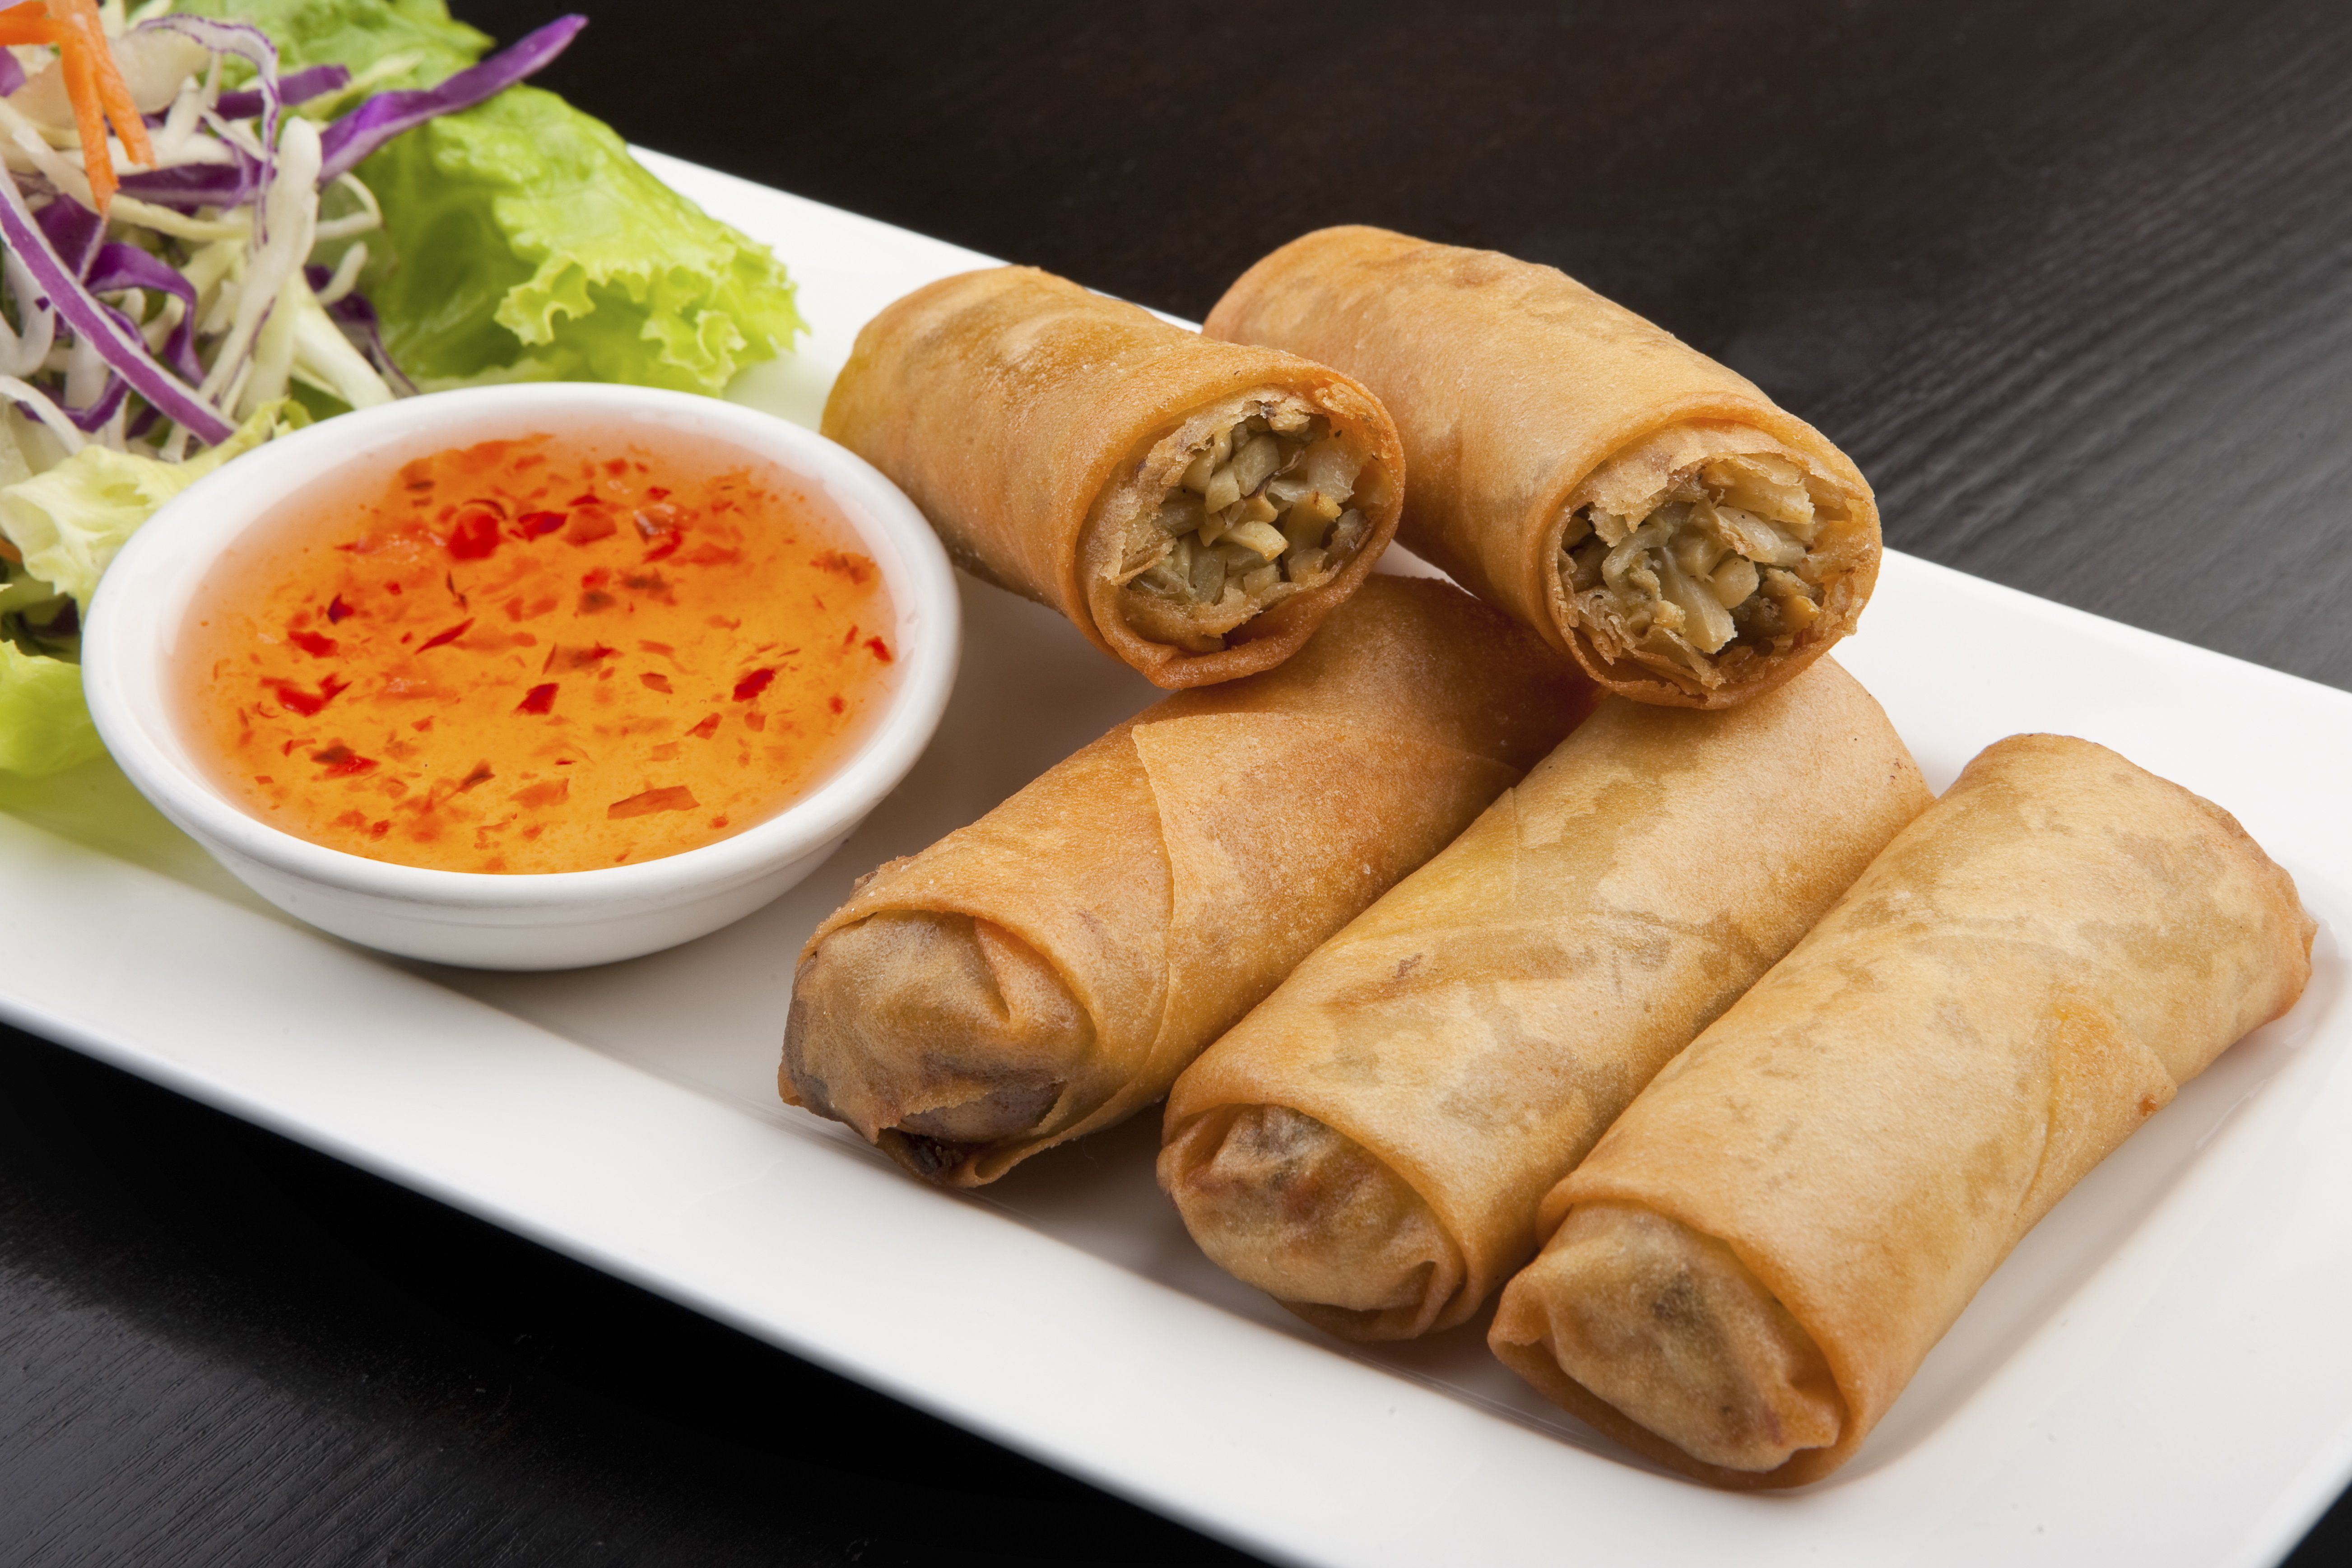 Plate of spring rolls, sauce and salad